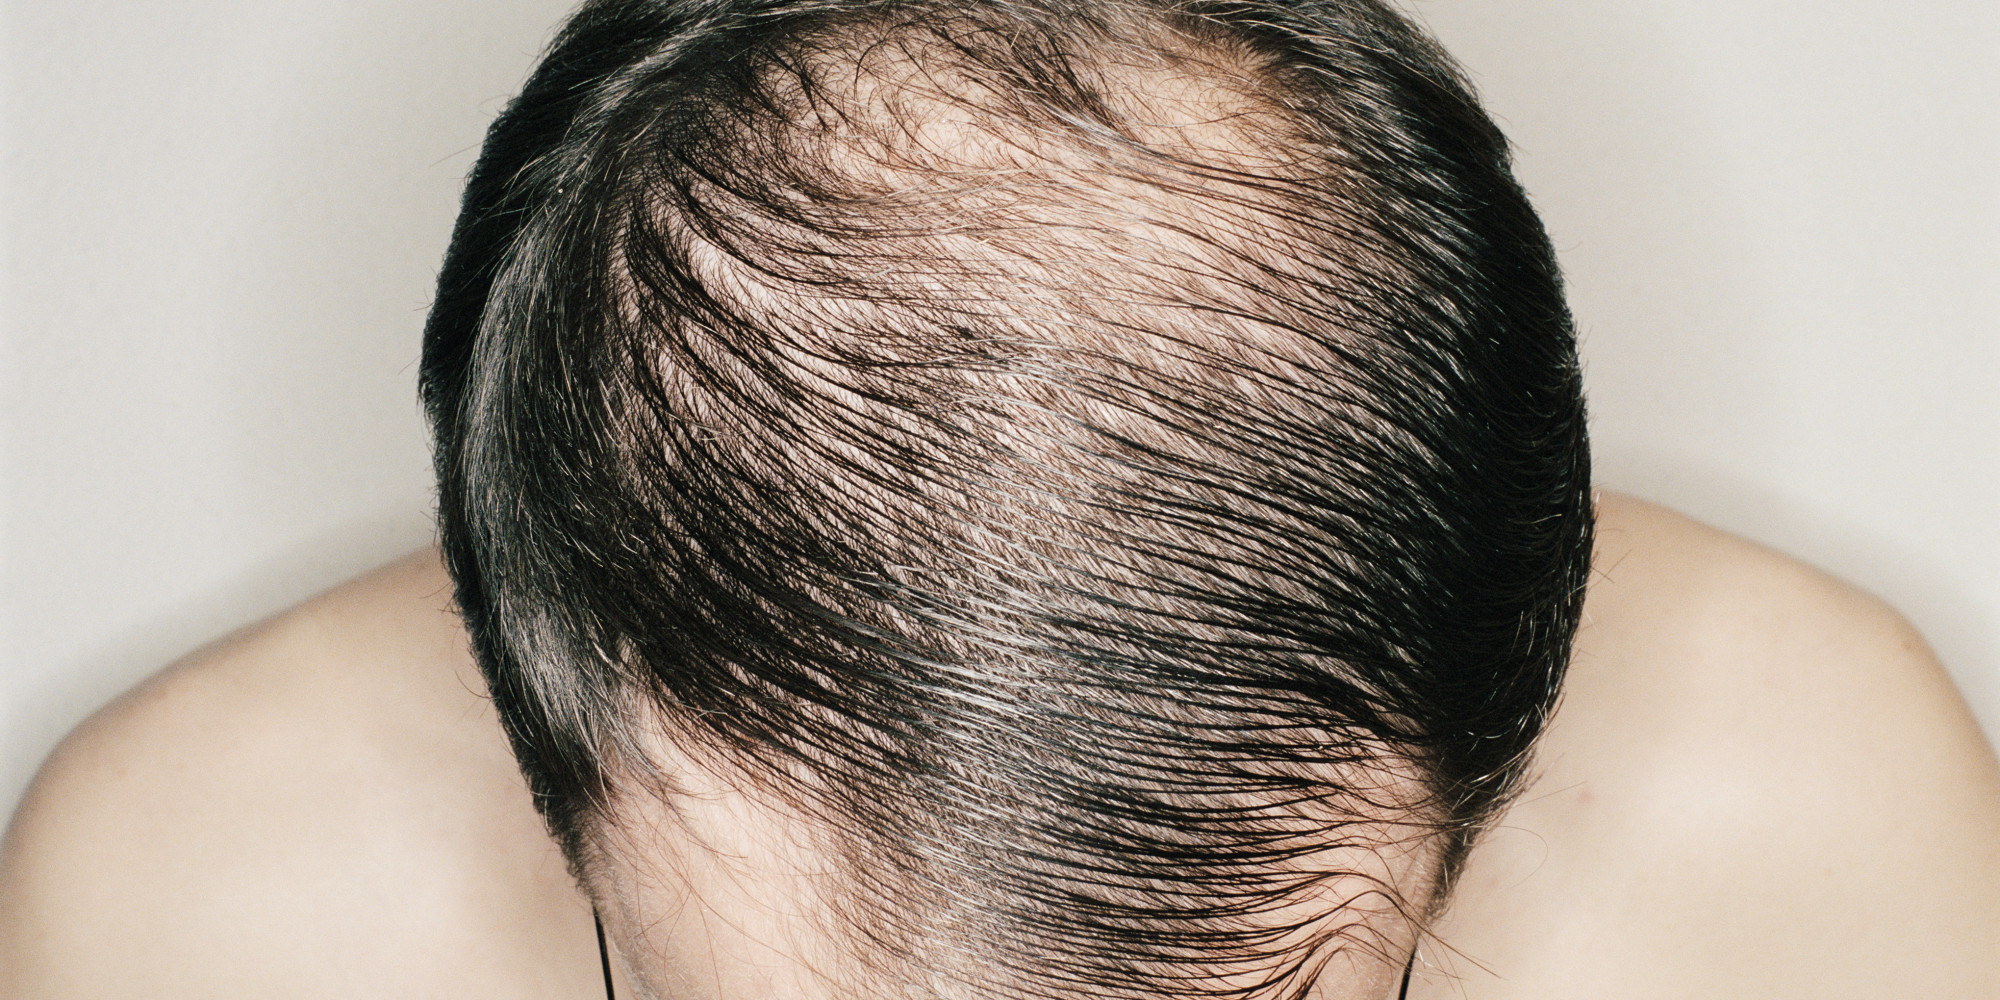 How long after stopping propecia does hair fall out